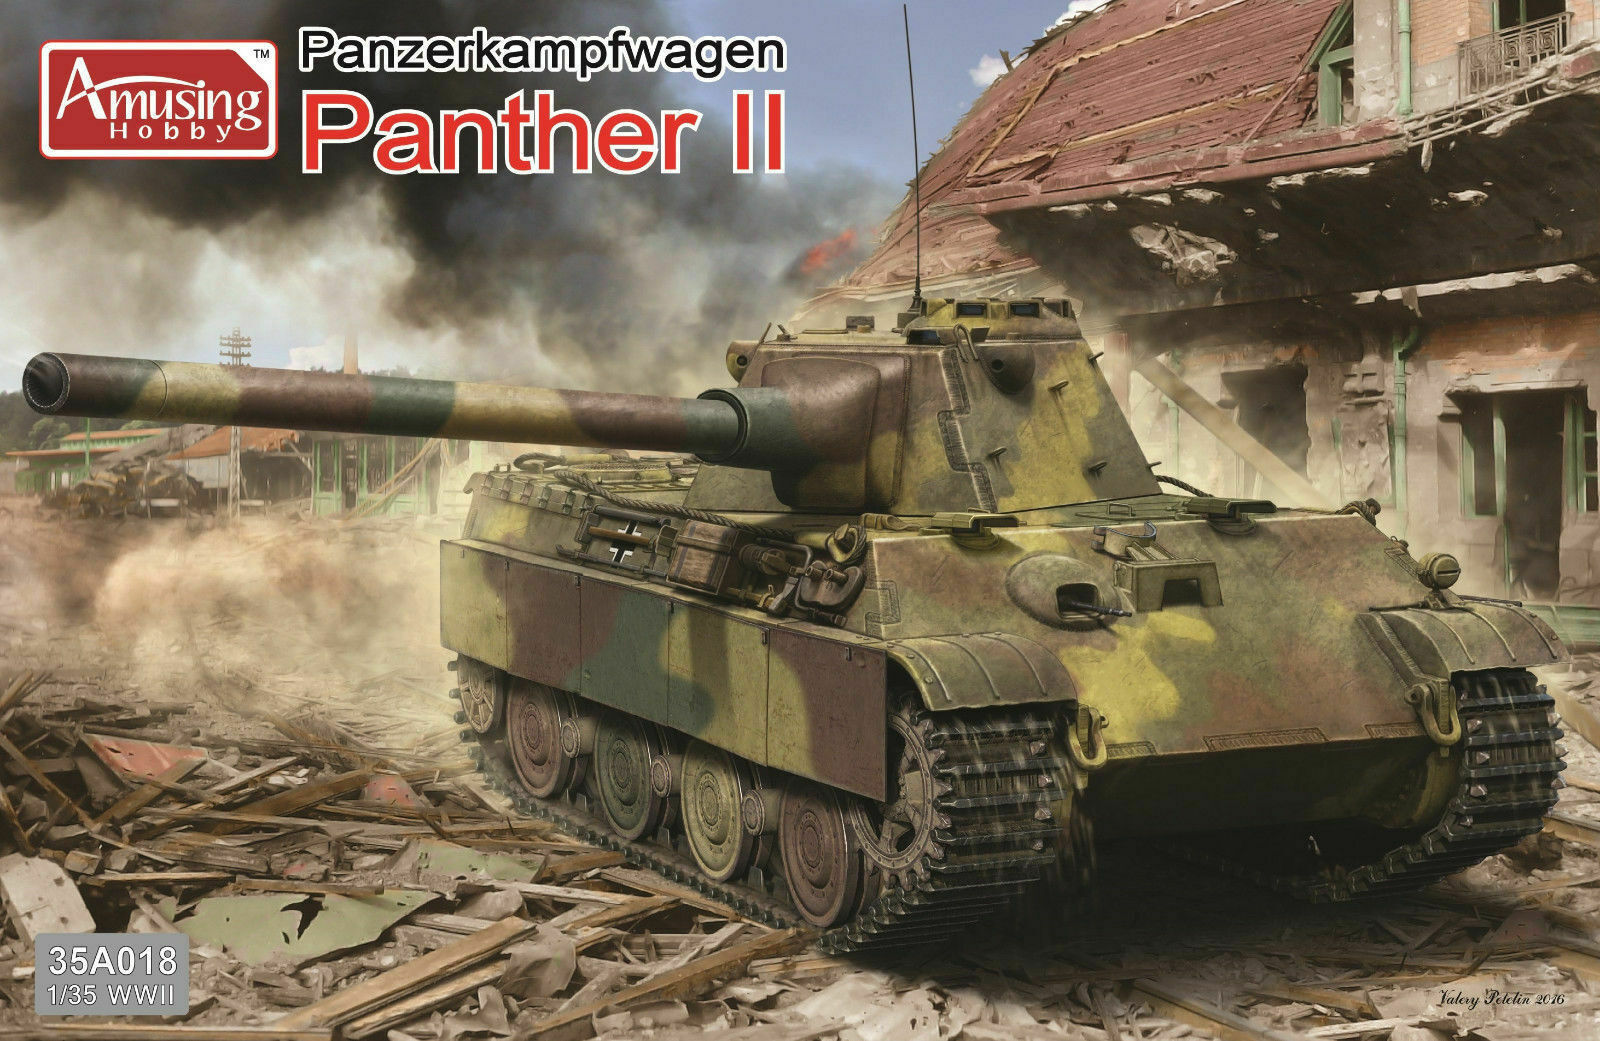 Panther II (2in1) Amusing Hobby 1 35